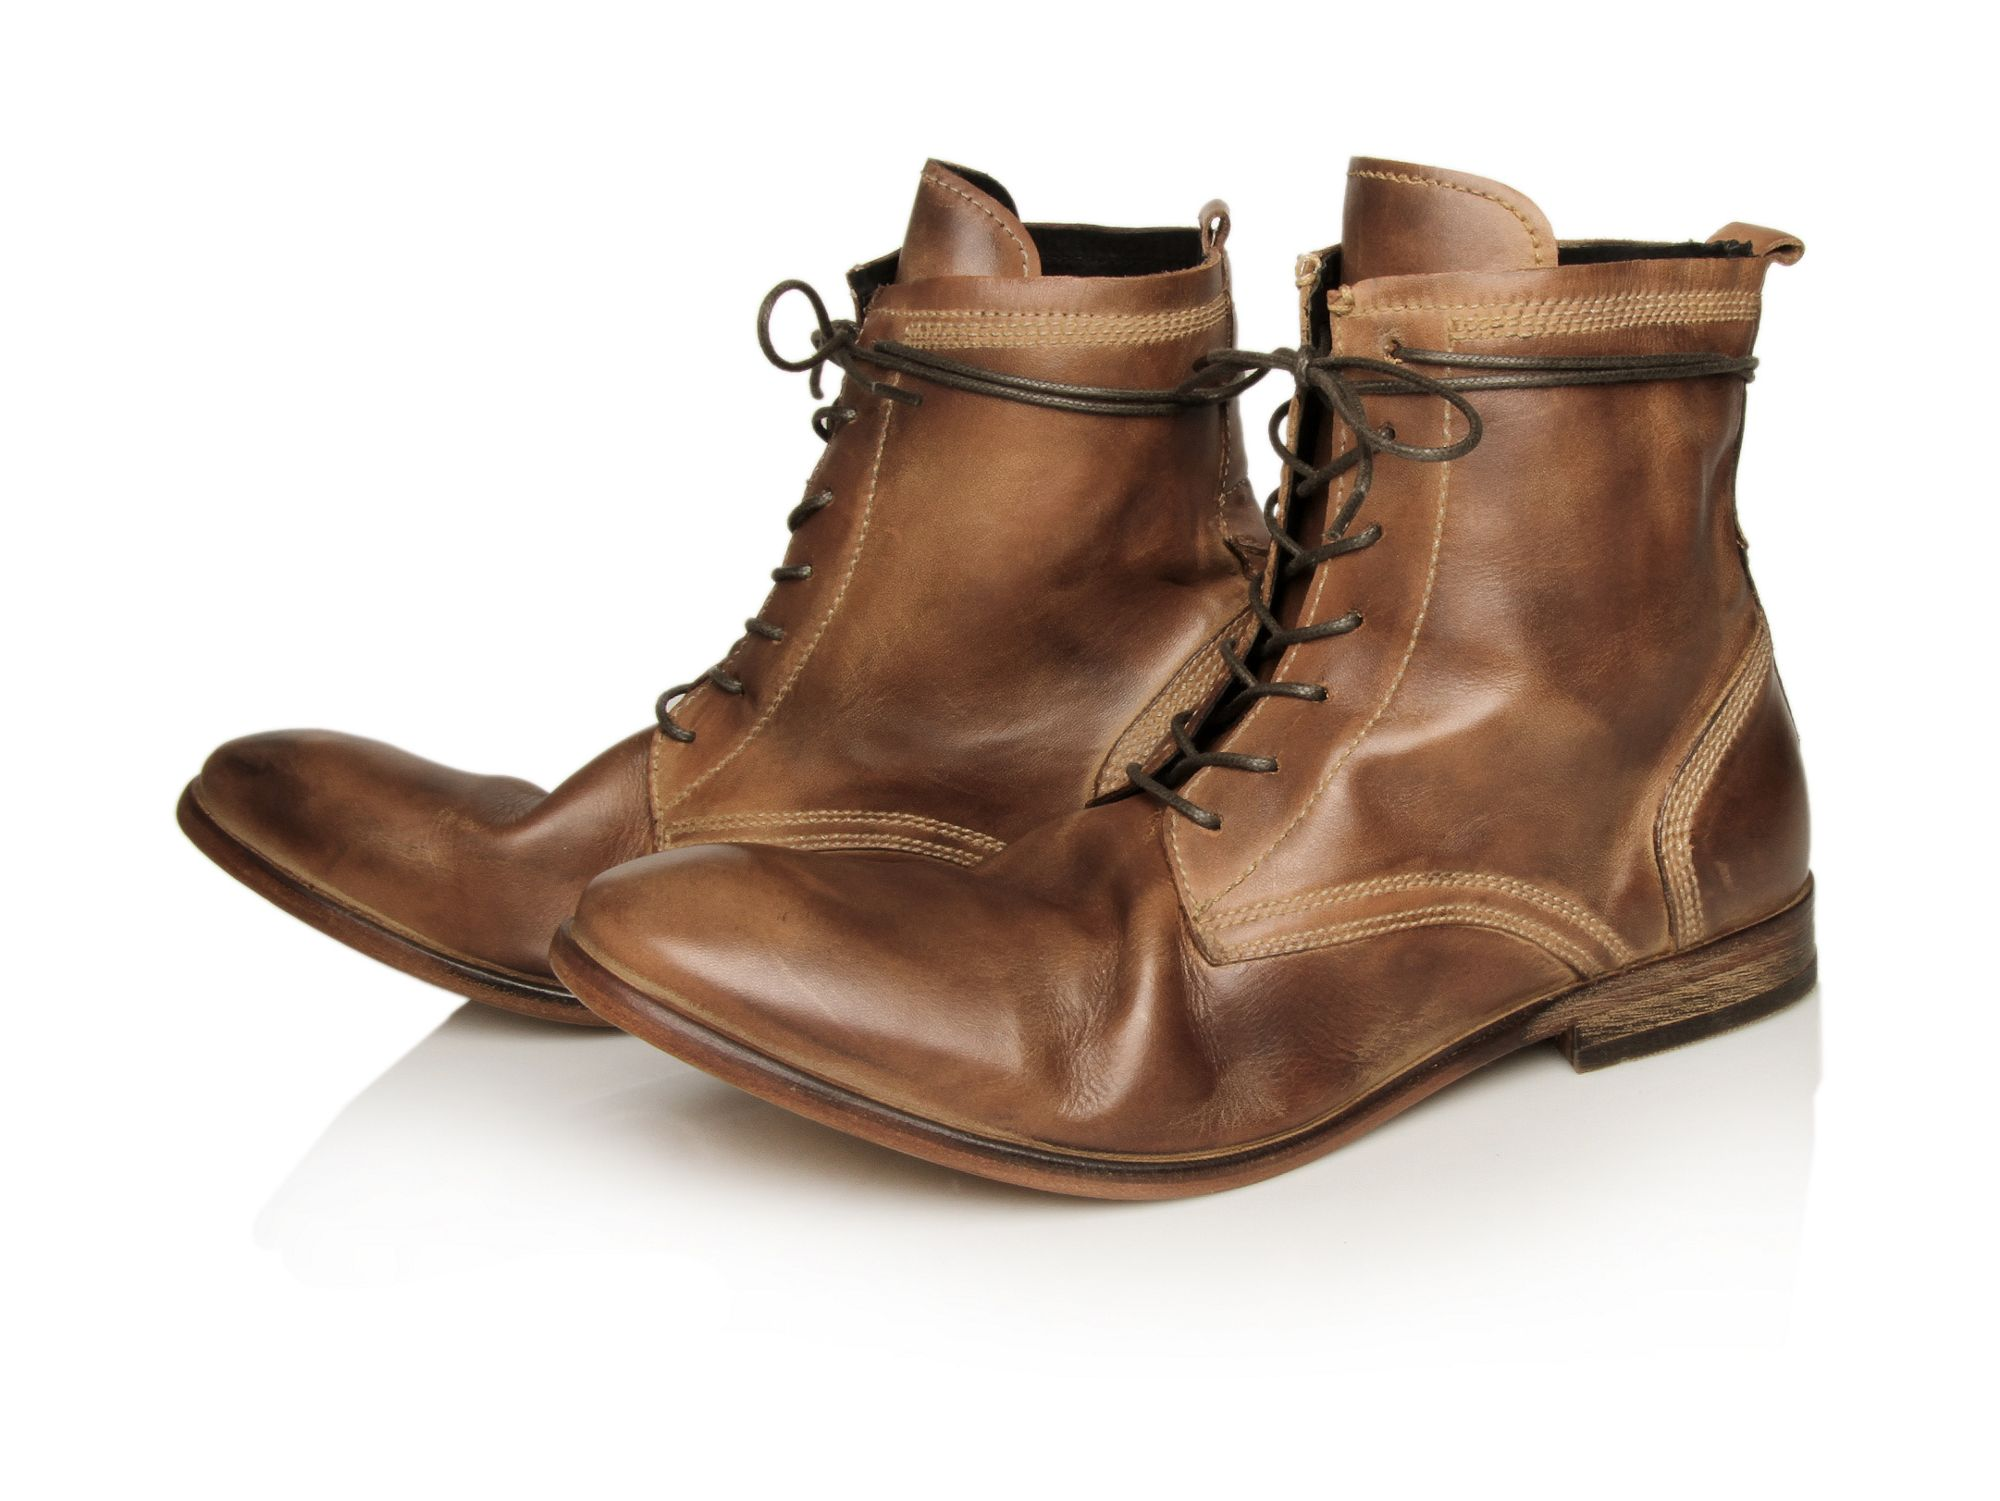 h by hudson swathmore boots in brown for lyst